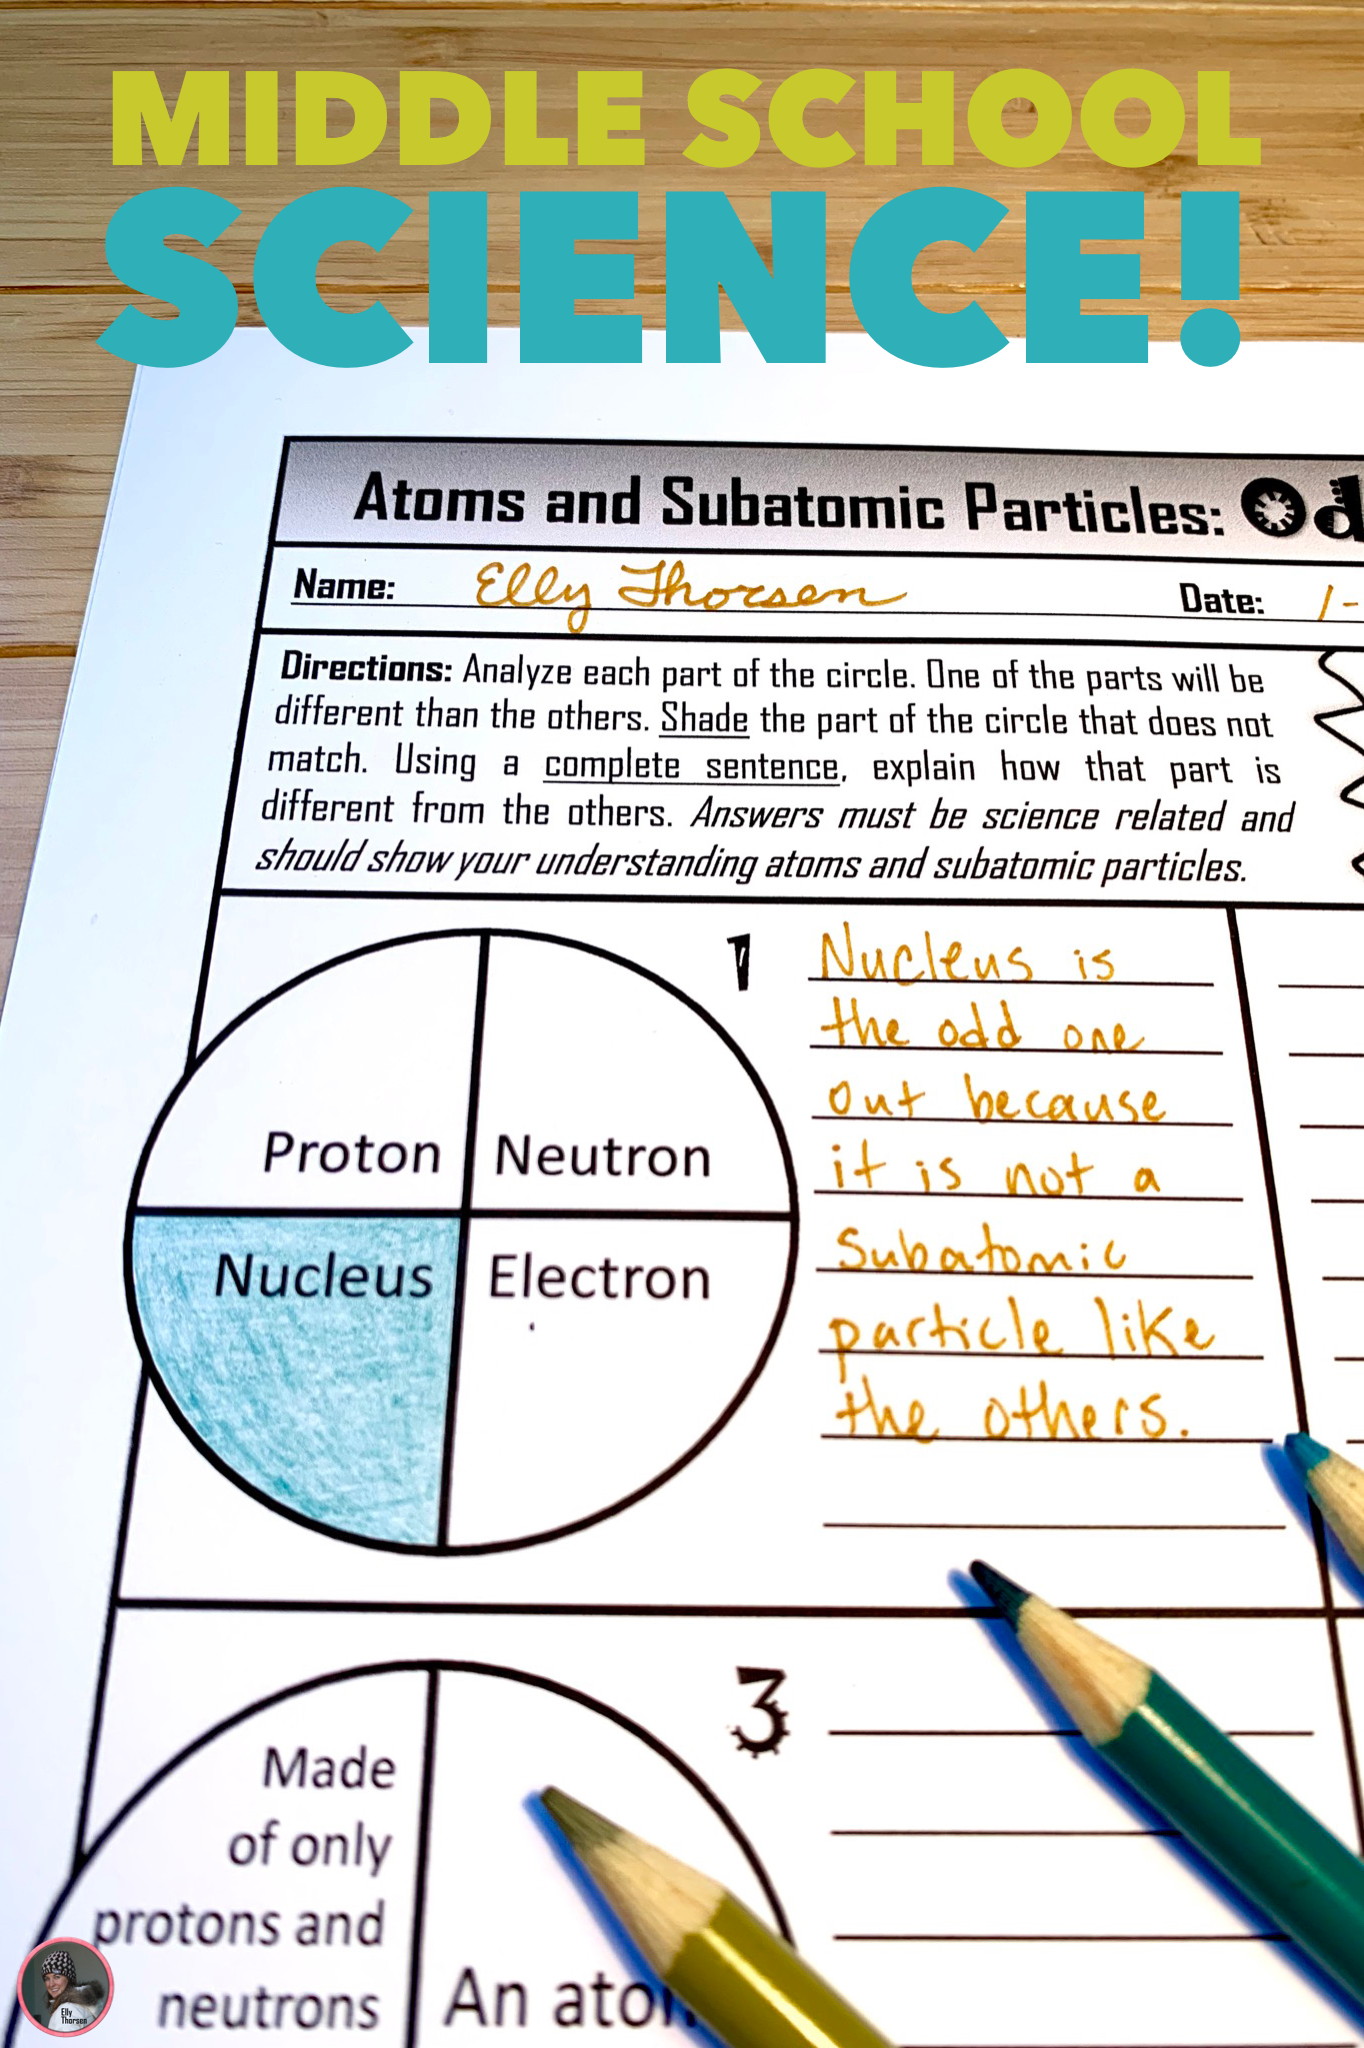 hight resolution of Atoms and Subatomic Particles Critical Thinking Worksheet for Middle School  Physical Science in 2020   Physical science middle school